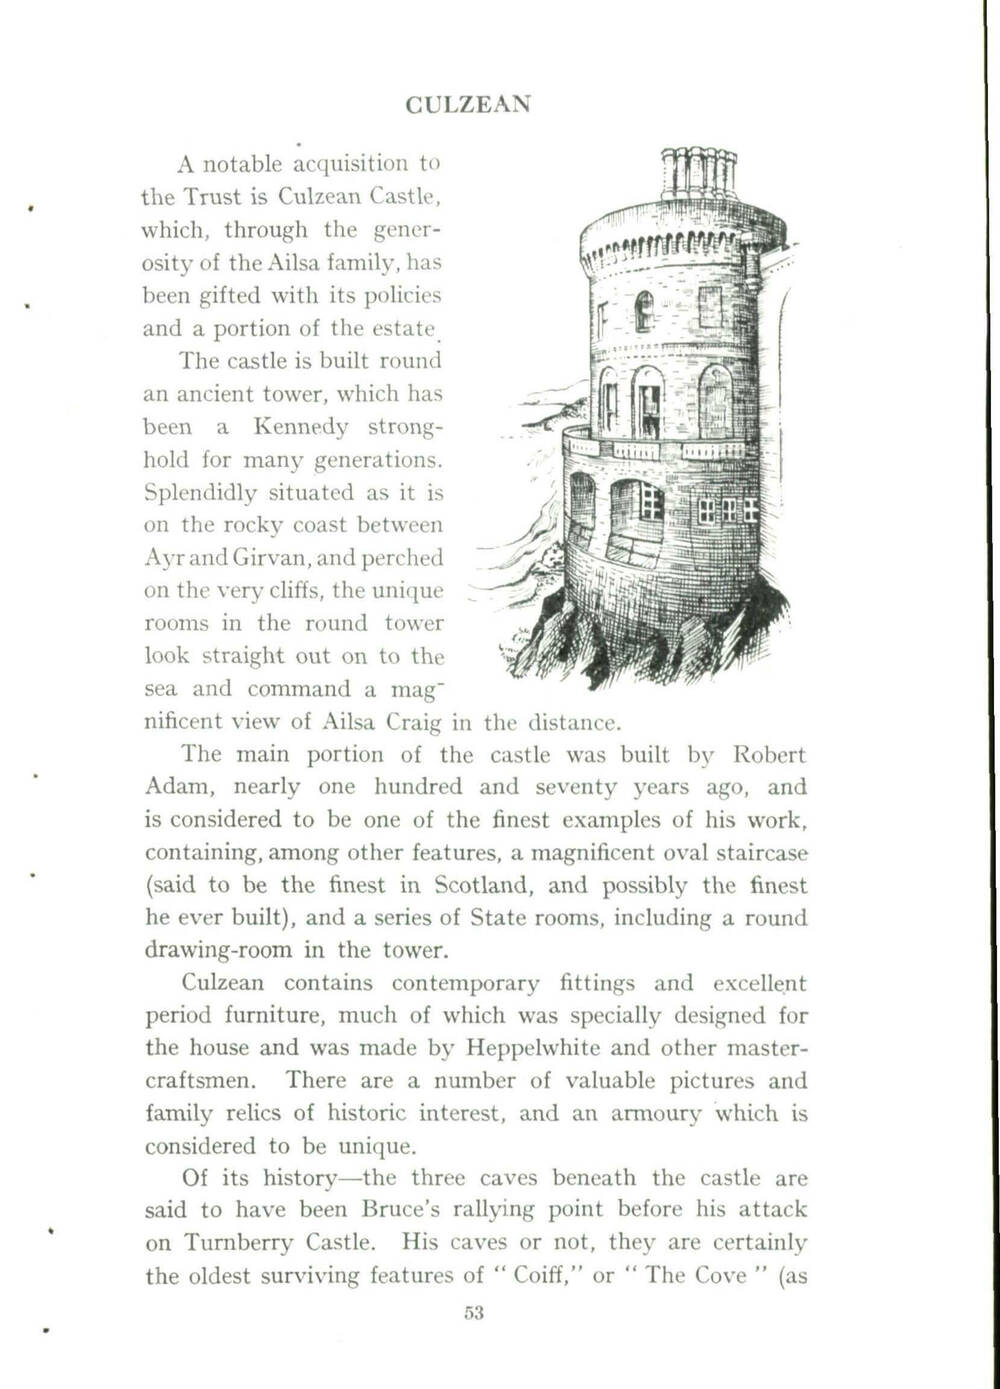 A page from the 1945 Annual Report detailing the Trust's acquisition of Culzean Castle